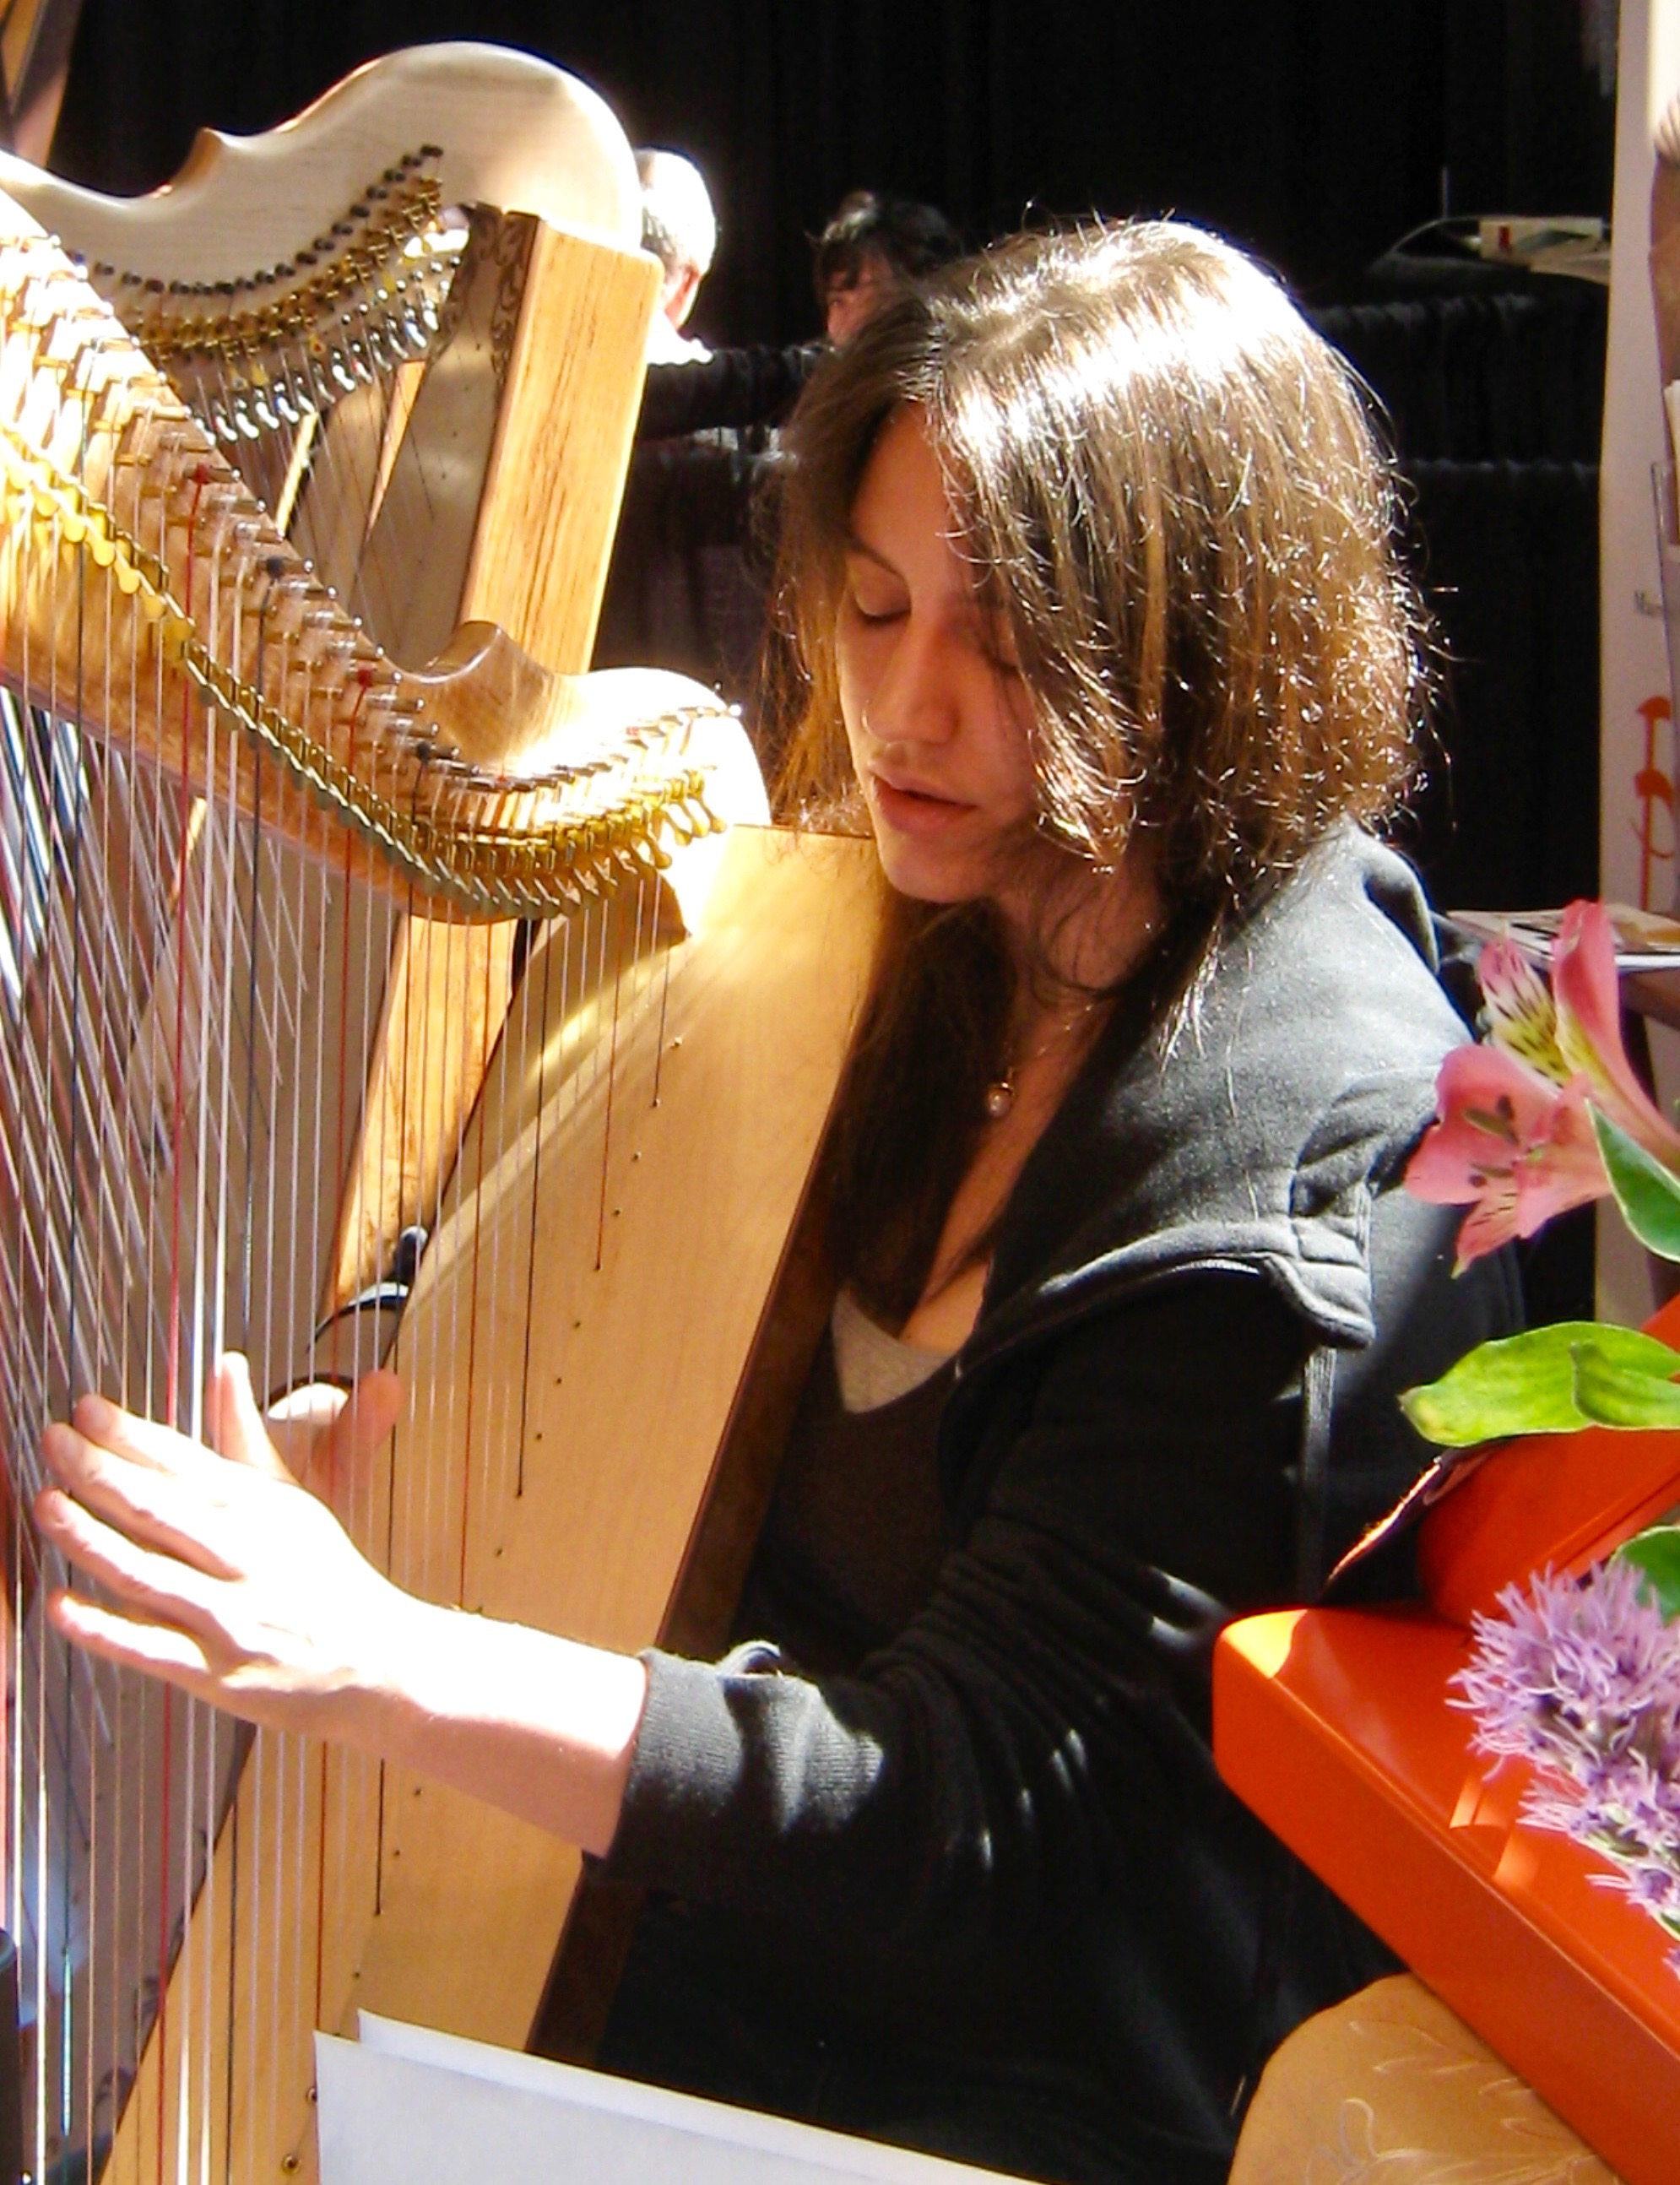 Marta Cook plays a Mariposa Harp at the World Harp Congress.